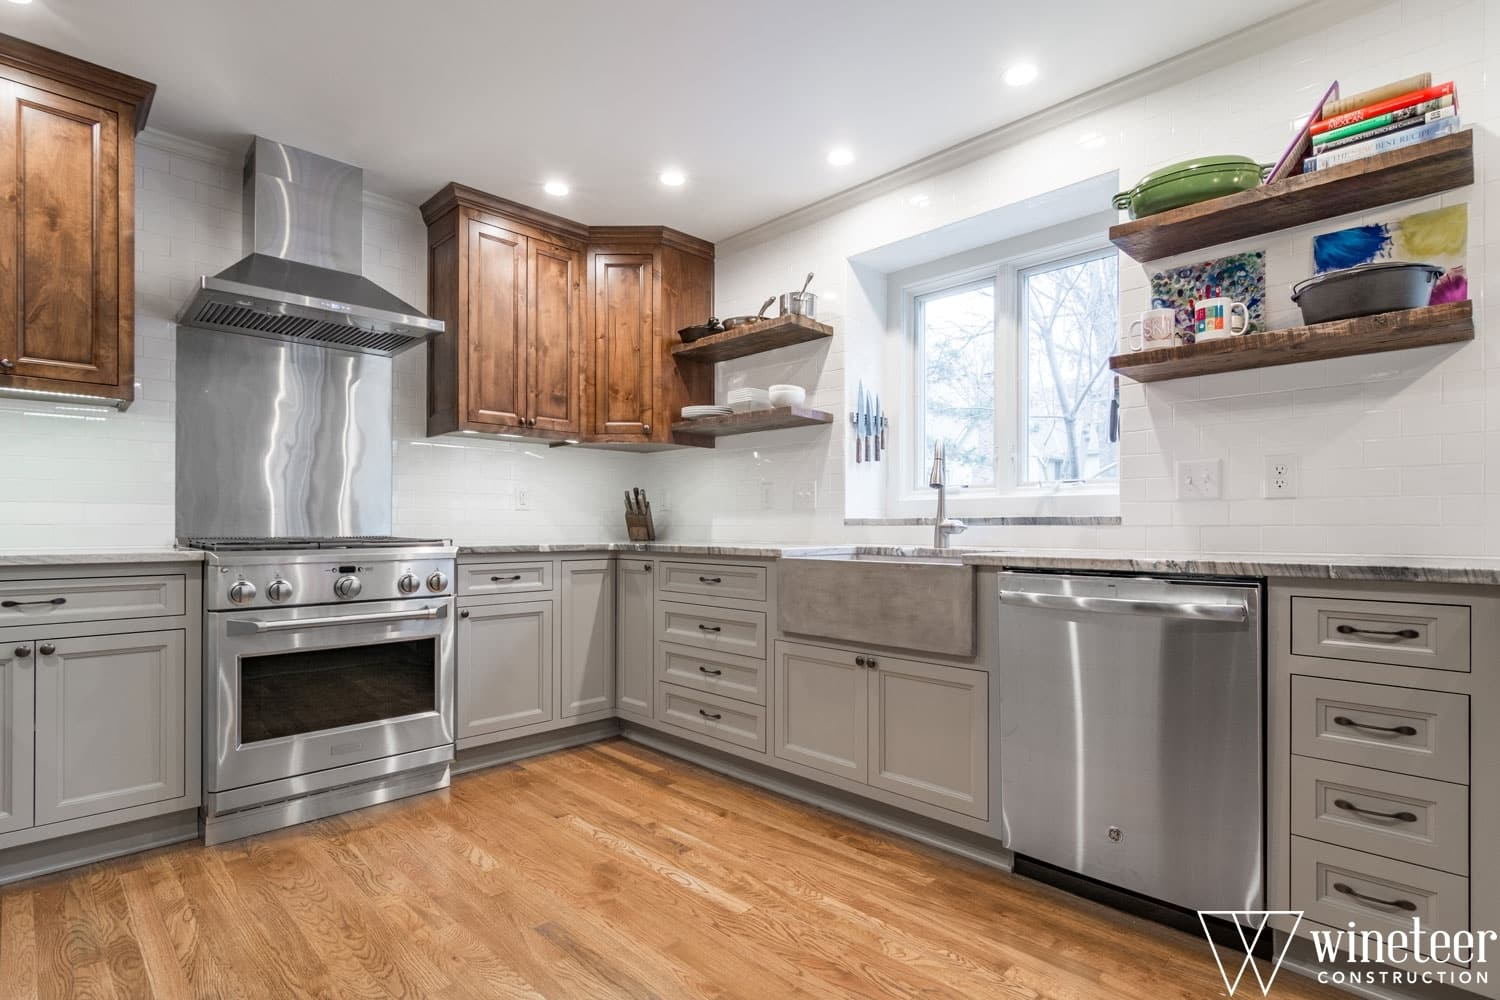 Kitchen Remodeling - Wineteer Construction